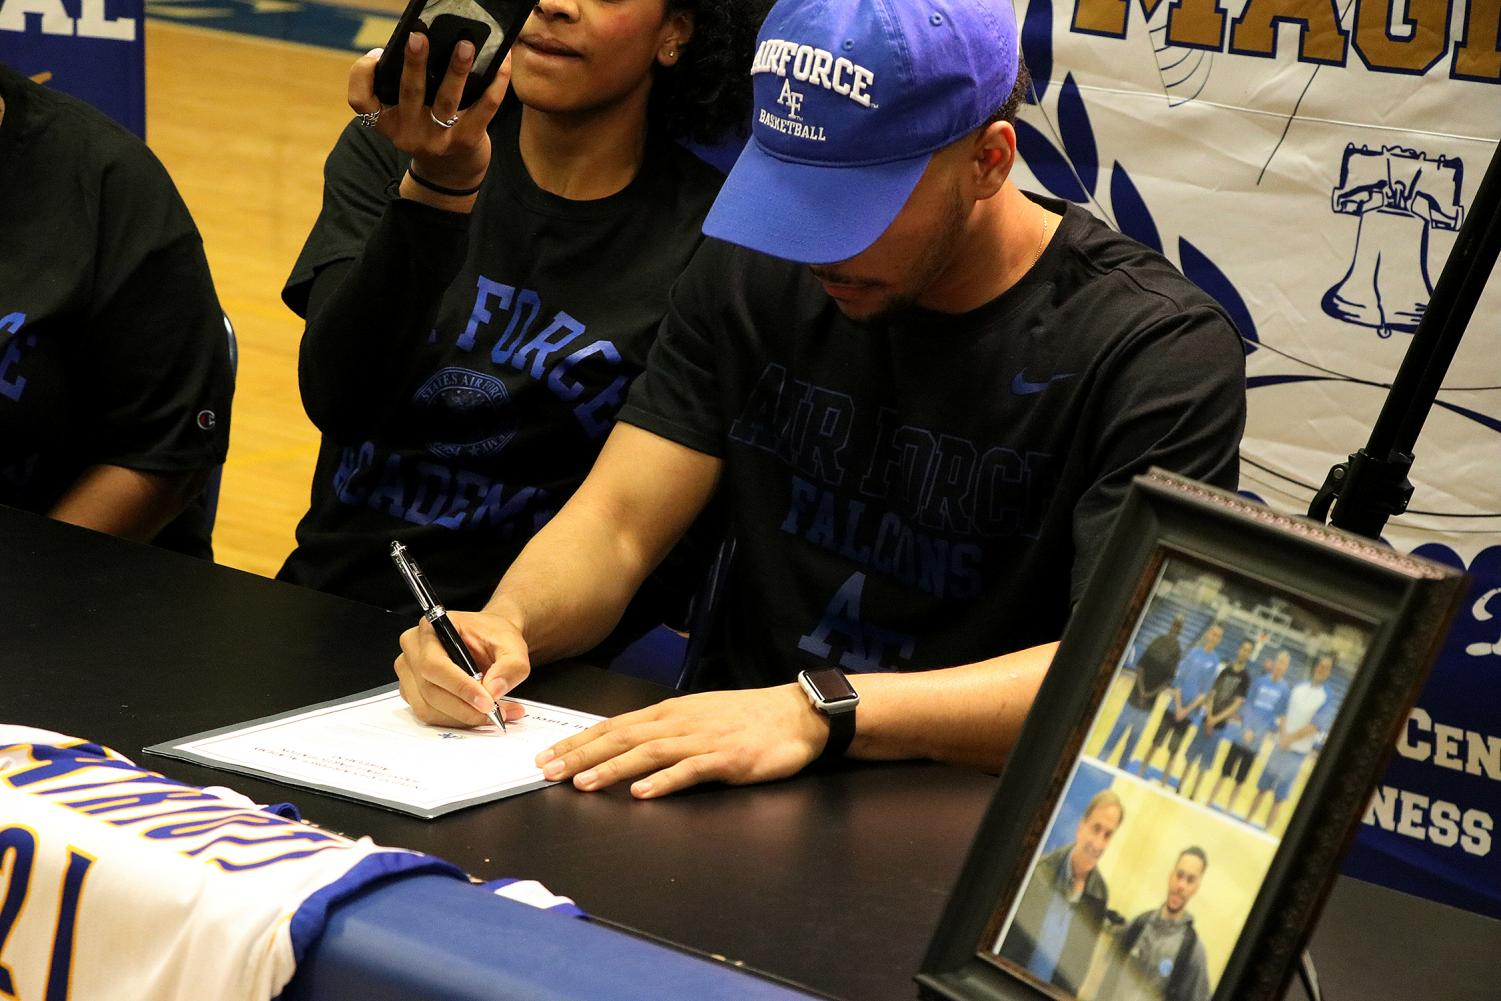 Nicolas René signs his contract with the United States Air Force Academy.